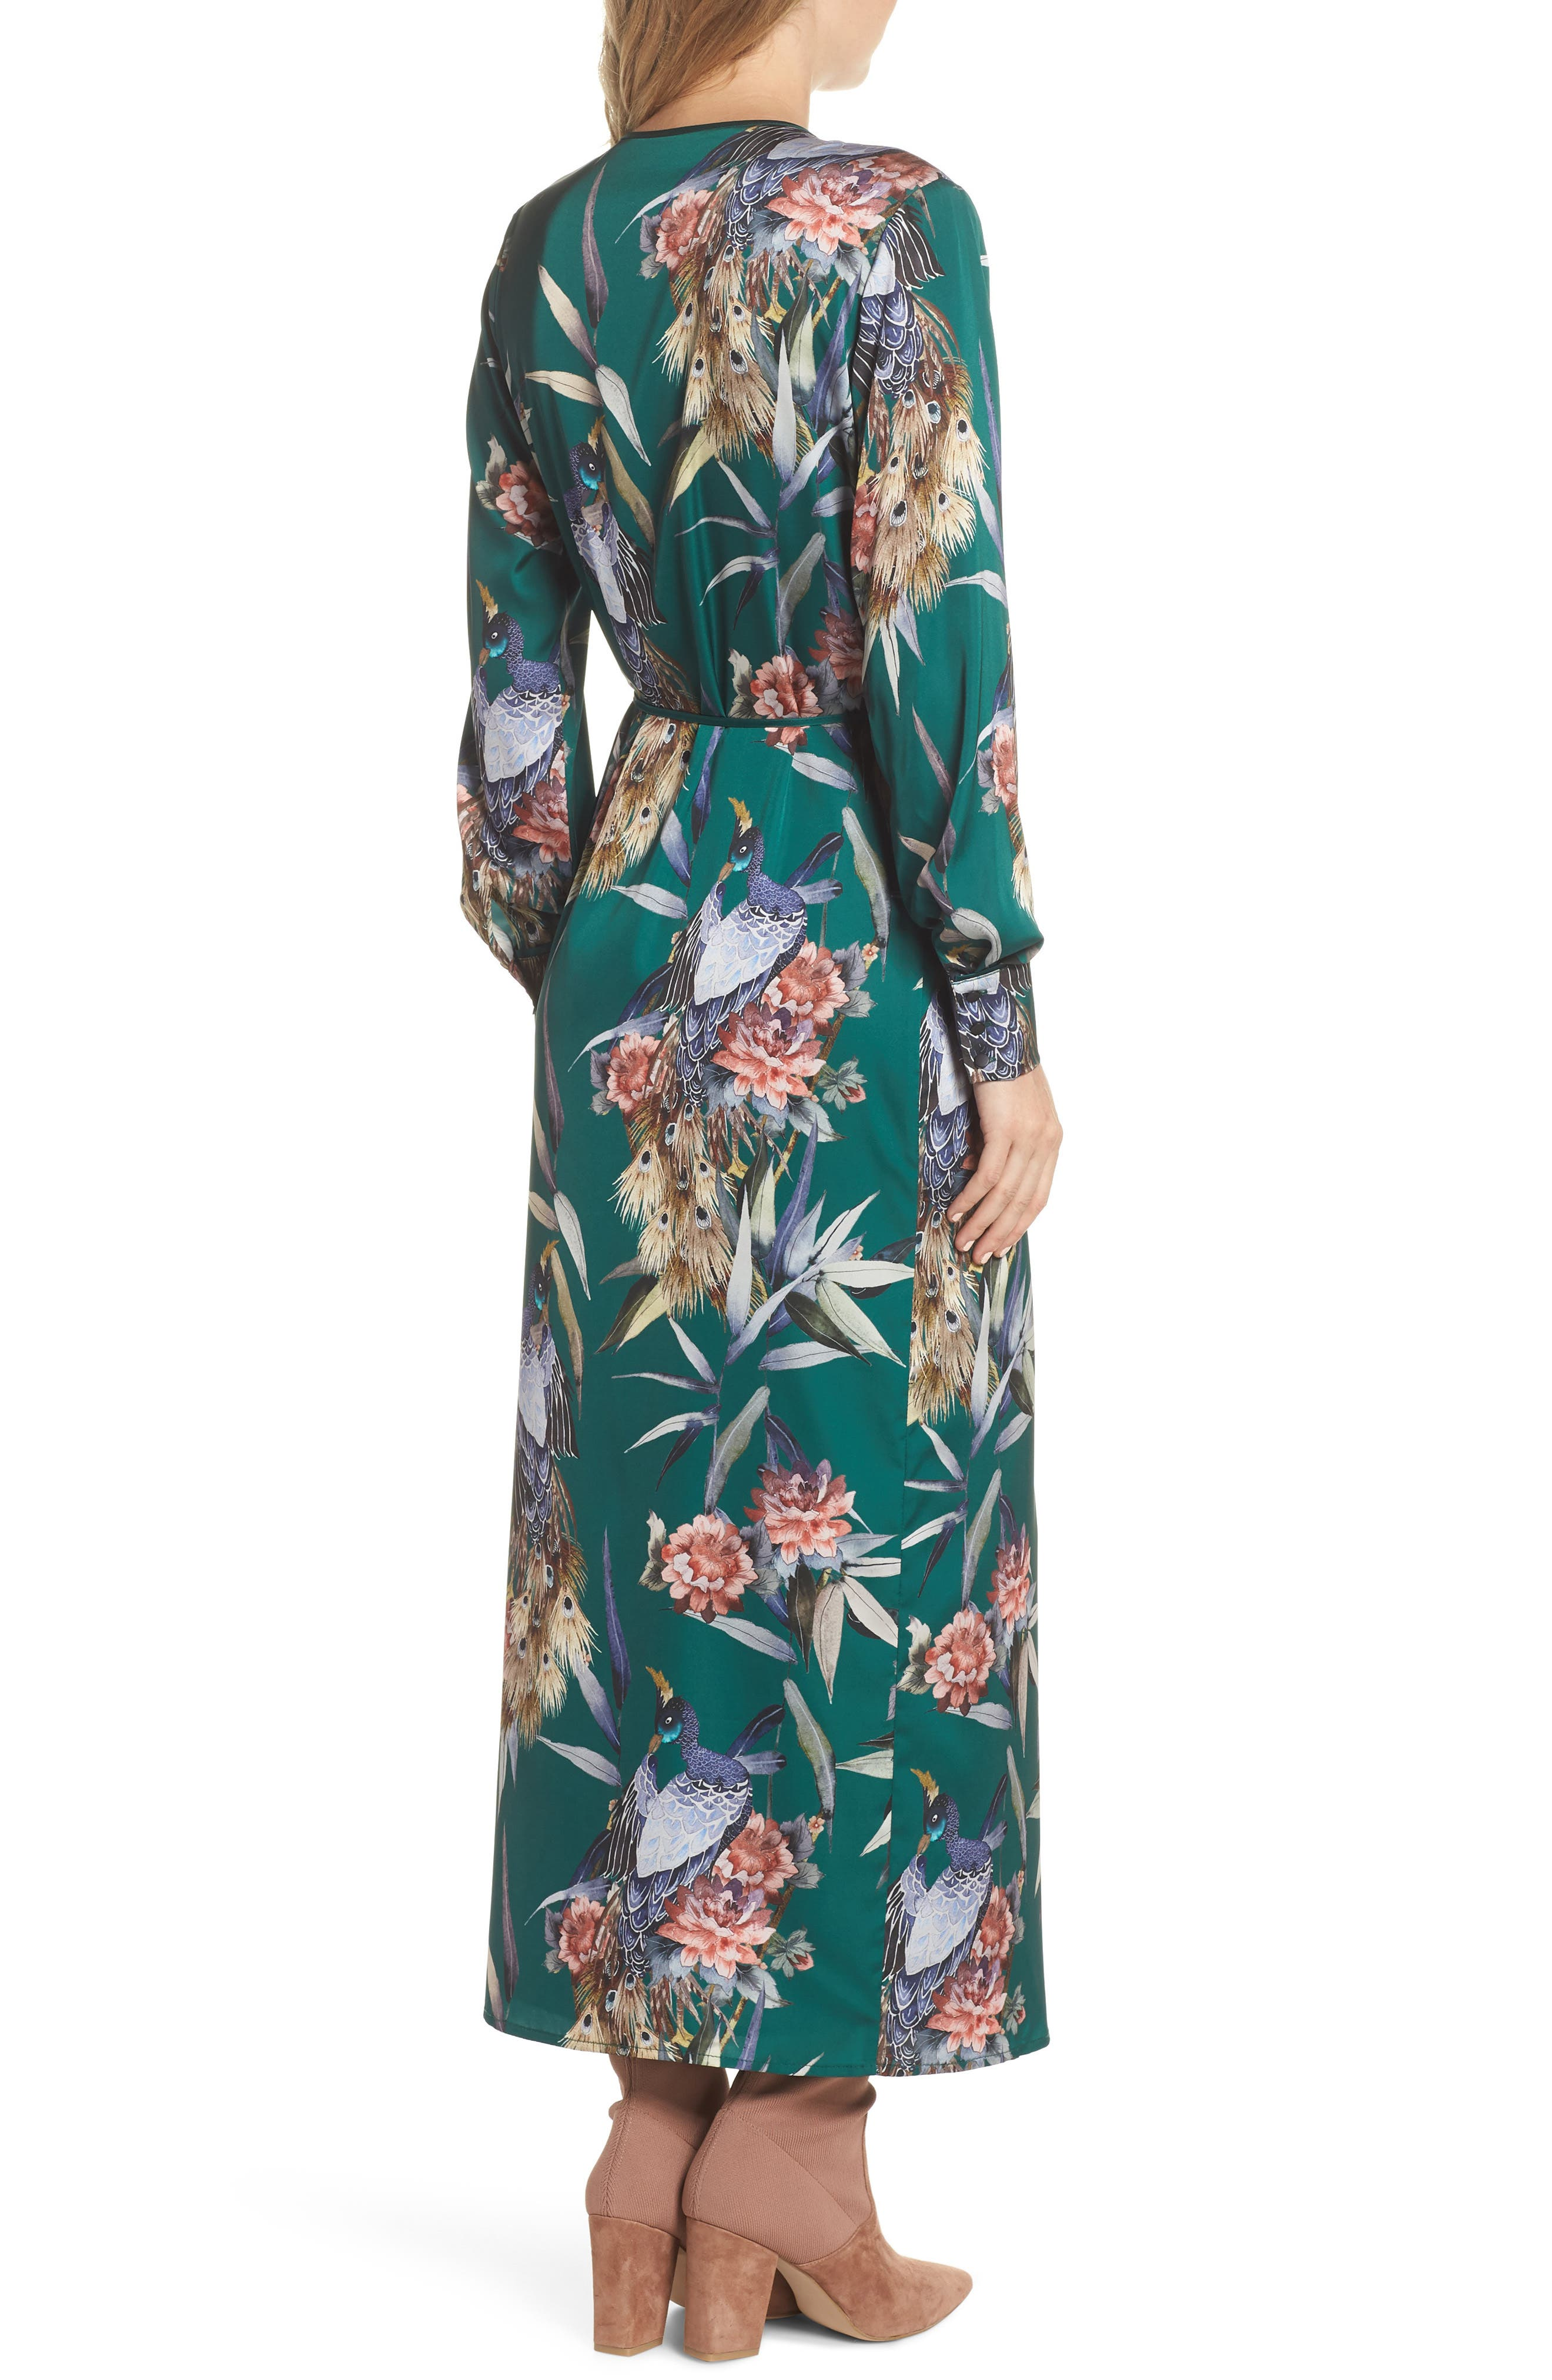 FOREST LILY,                             Floral Print Wrap Dress,                             Alternate thumbnail 2, color,                             EVERGREEN COMBO